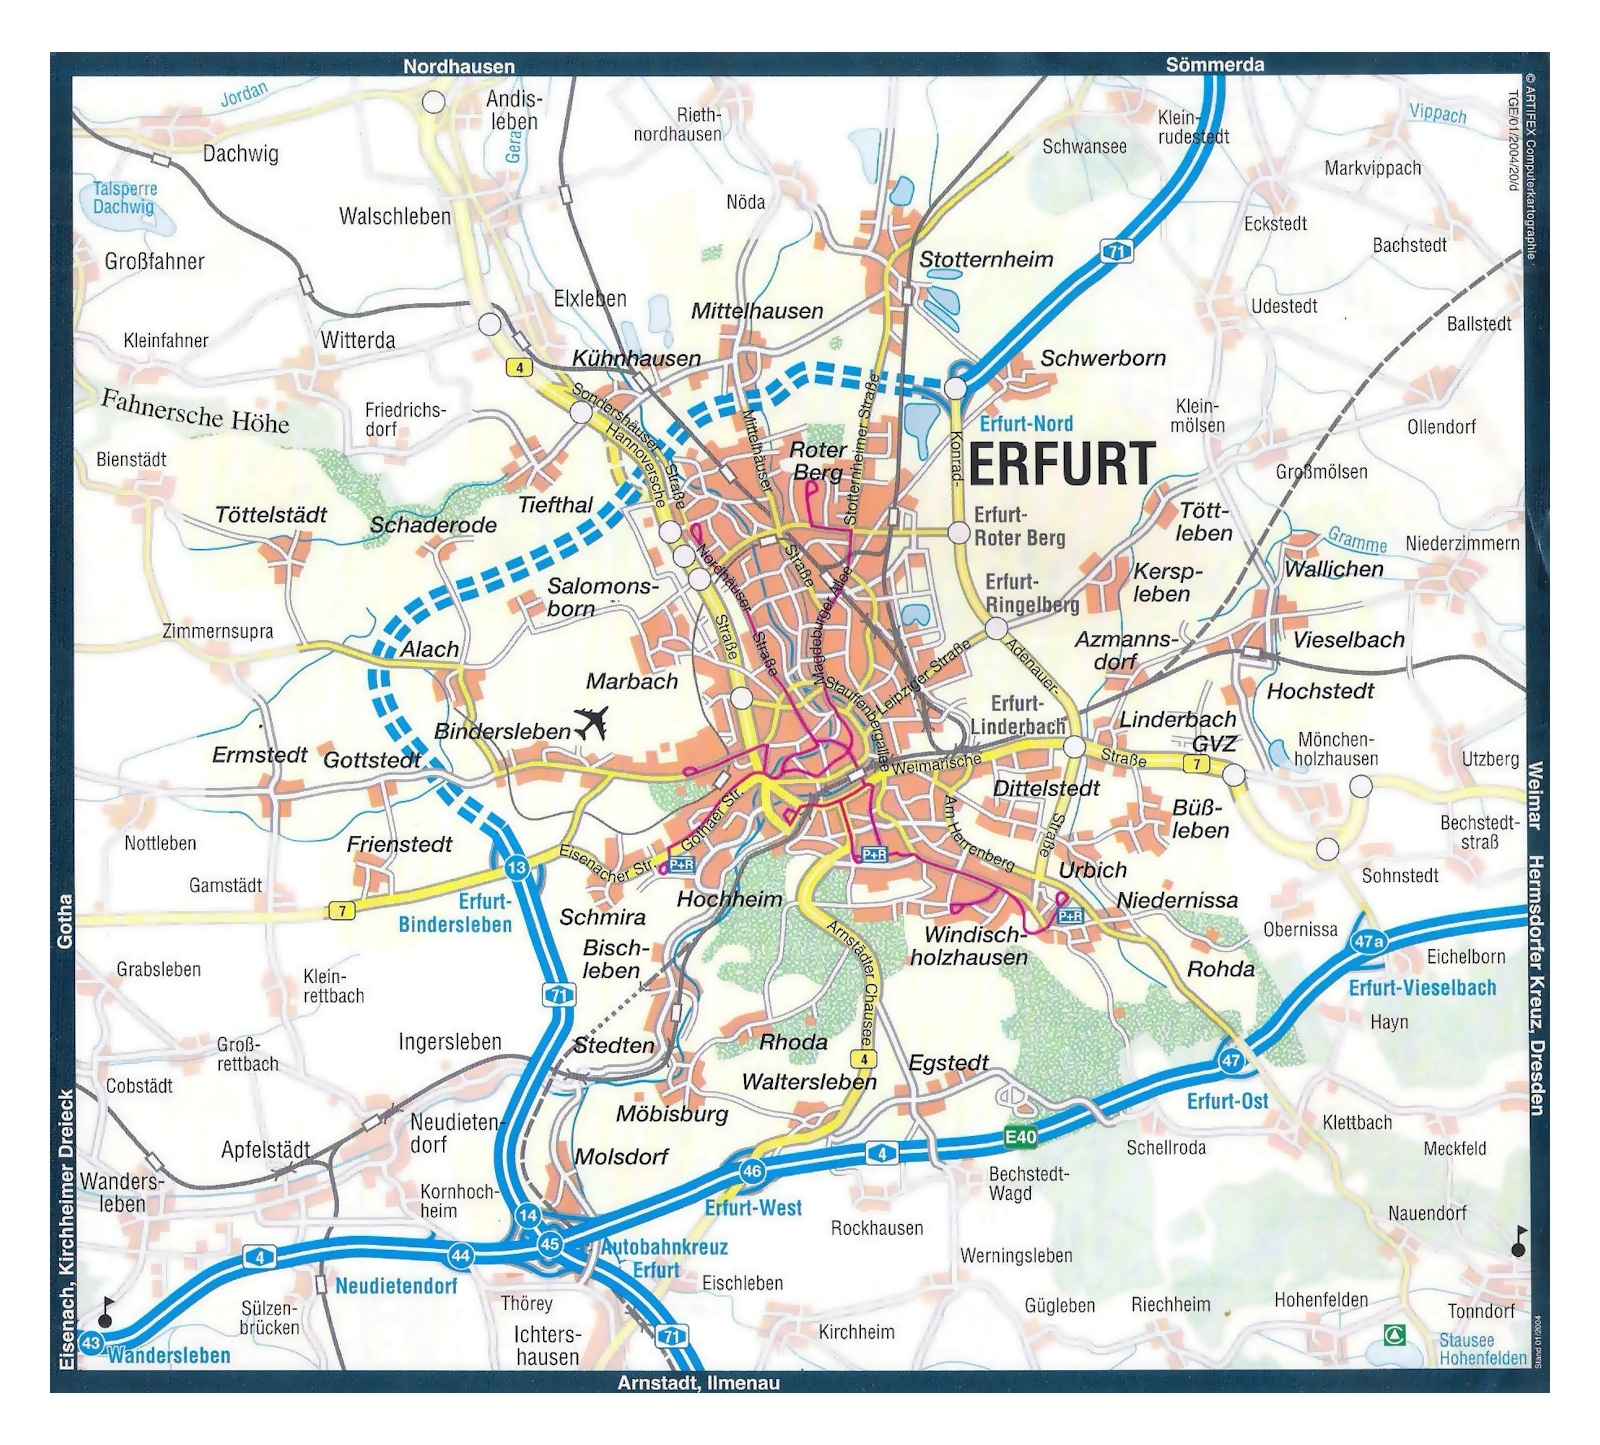 Large Map Of Erfurt City And Its Surroundings With Roads And Other pertaining to Erfurt Germany Map